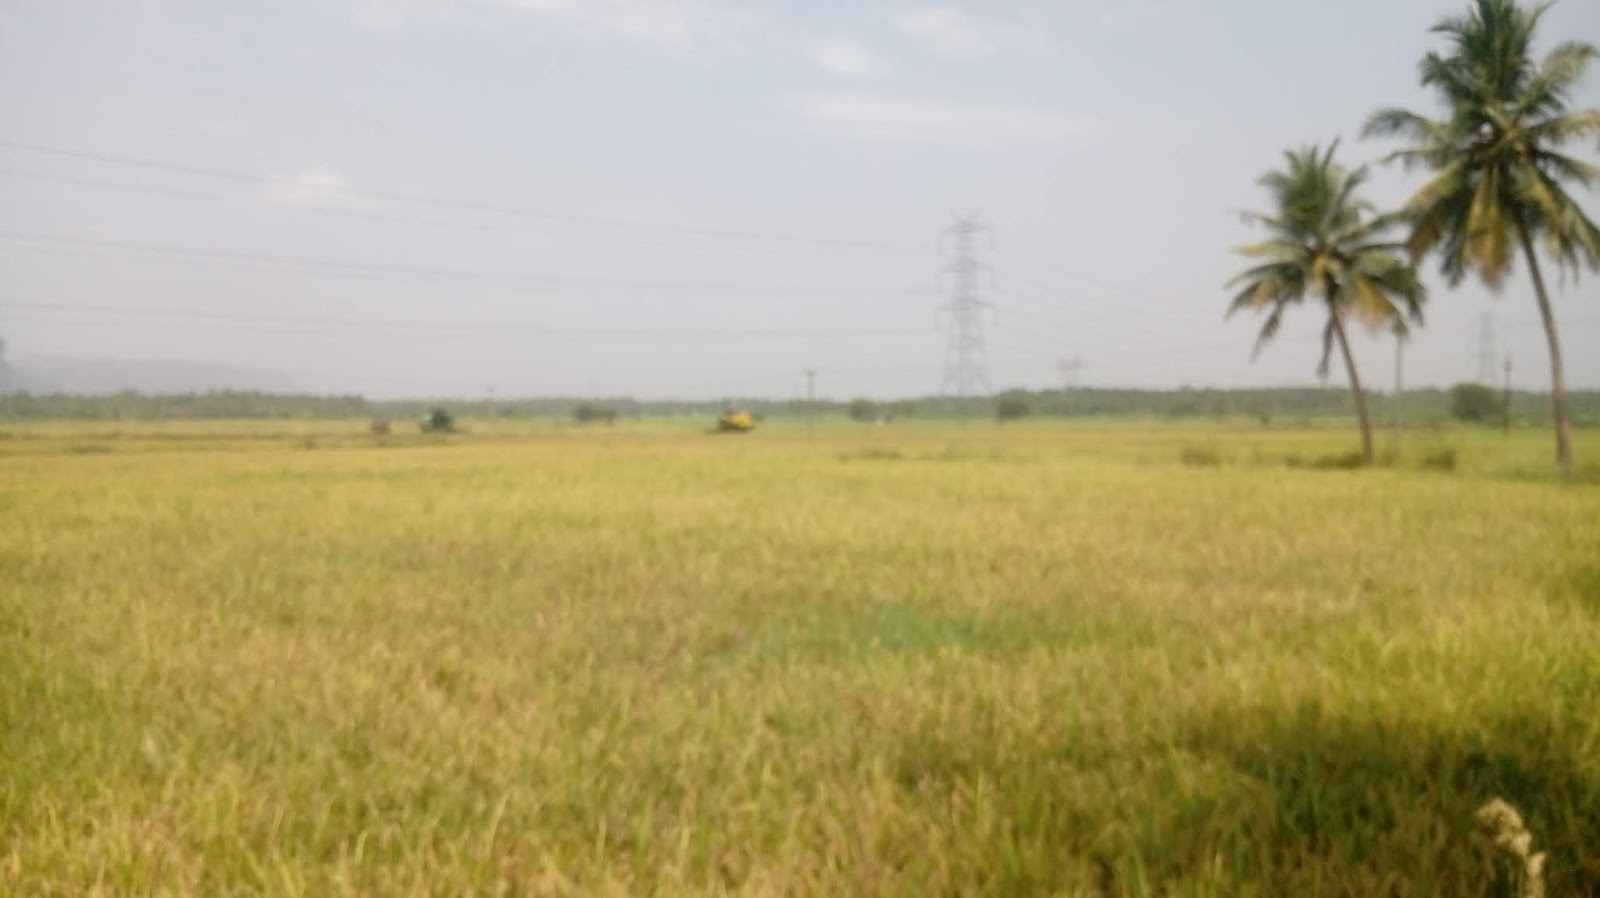 1 5 Acre's paddy cultivation land for sale in near sholavandan